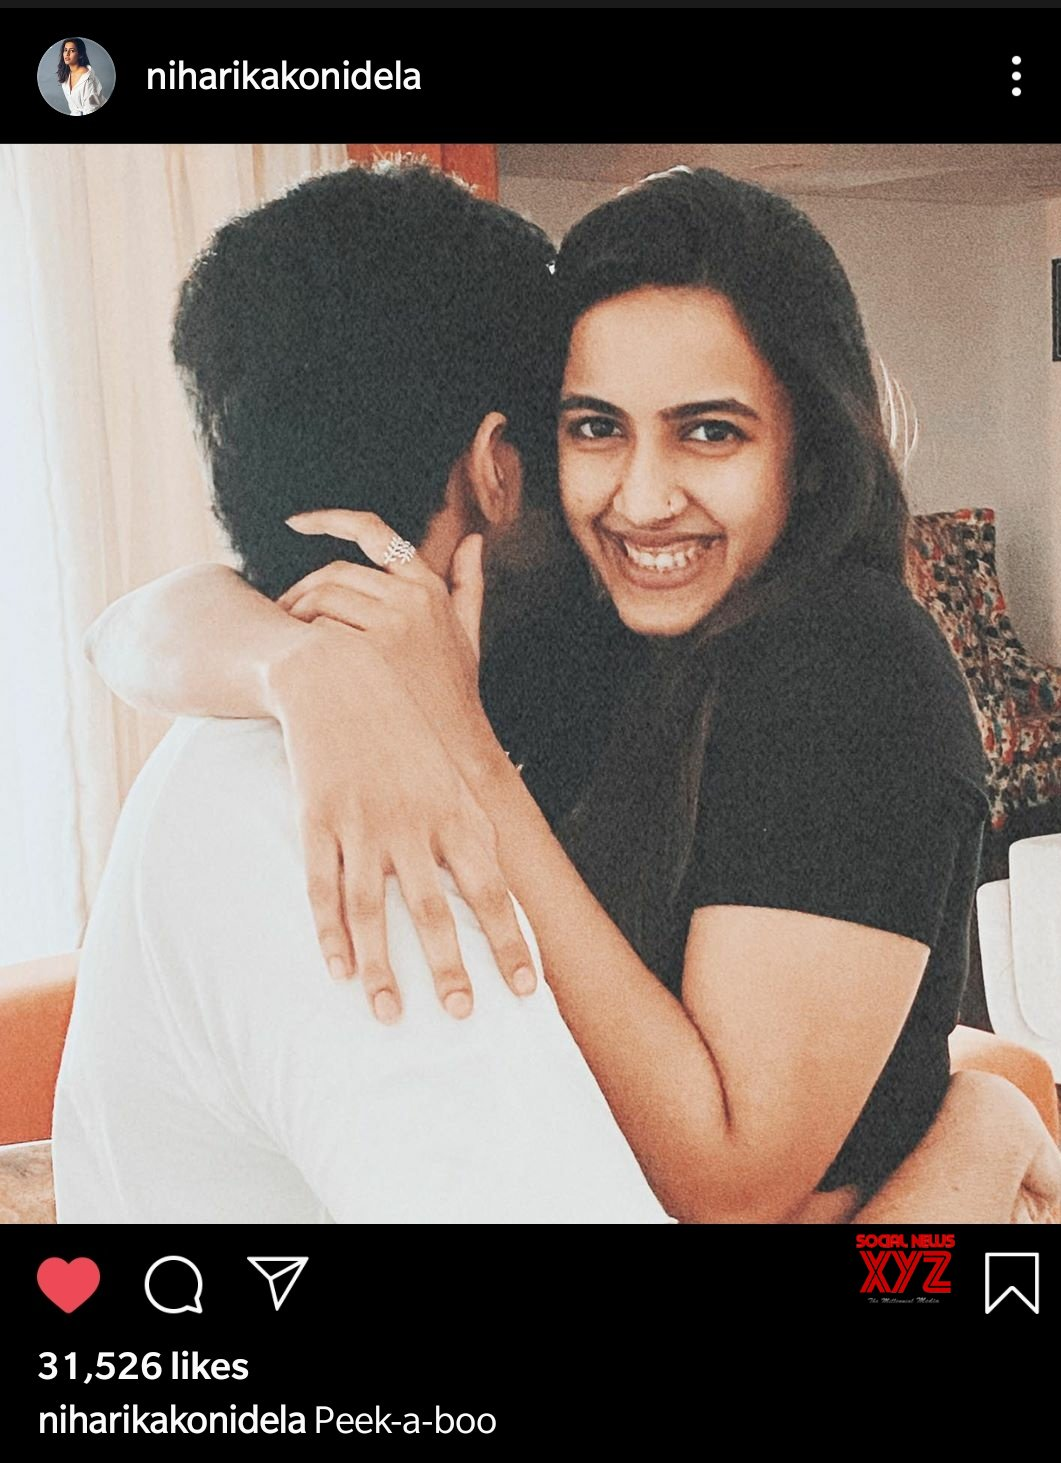 Niharika Konidela to get engaged on August 13th, marriage in December